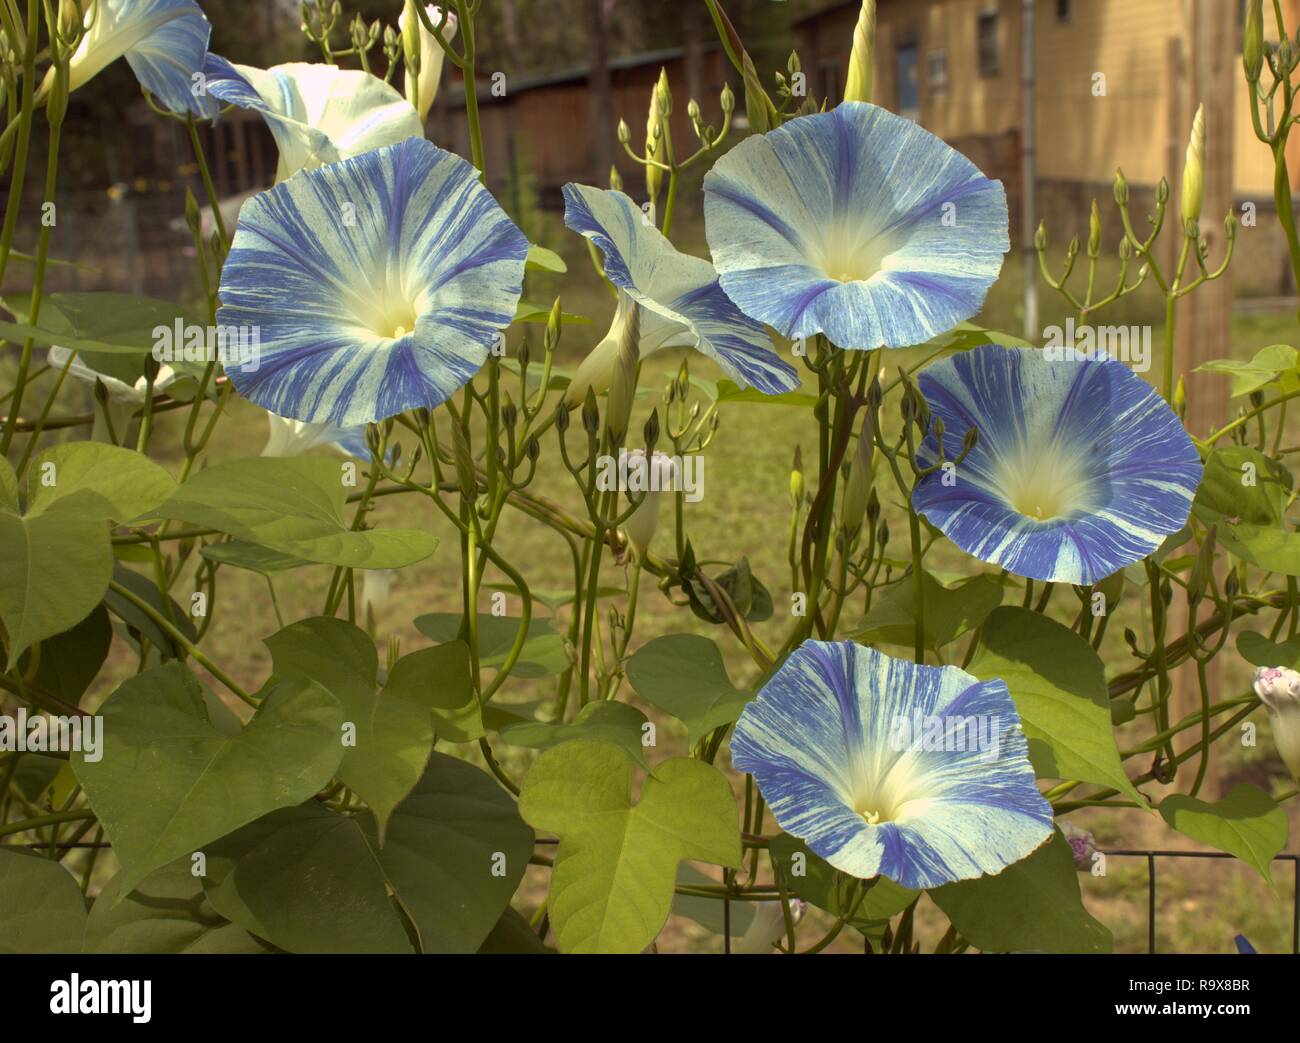 Blue And White Morning Glories Abloom In The Backyard - Stock Image